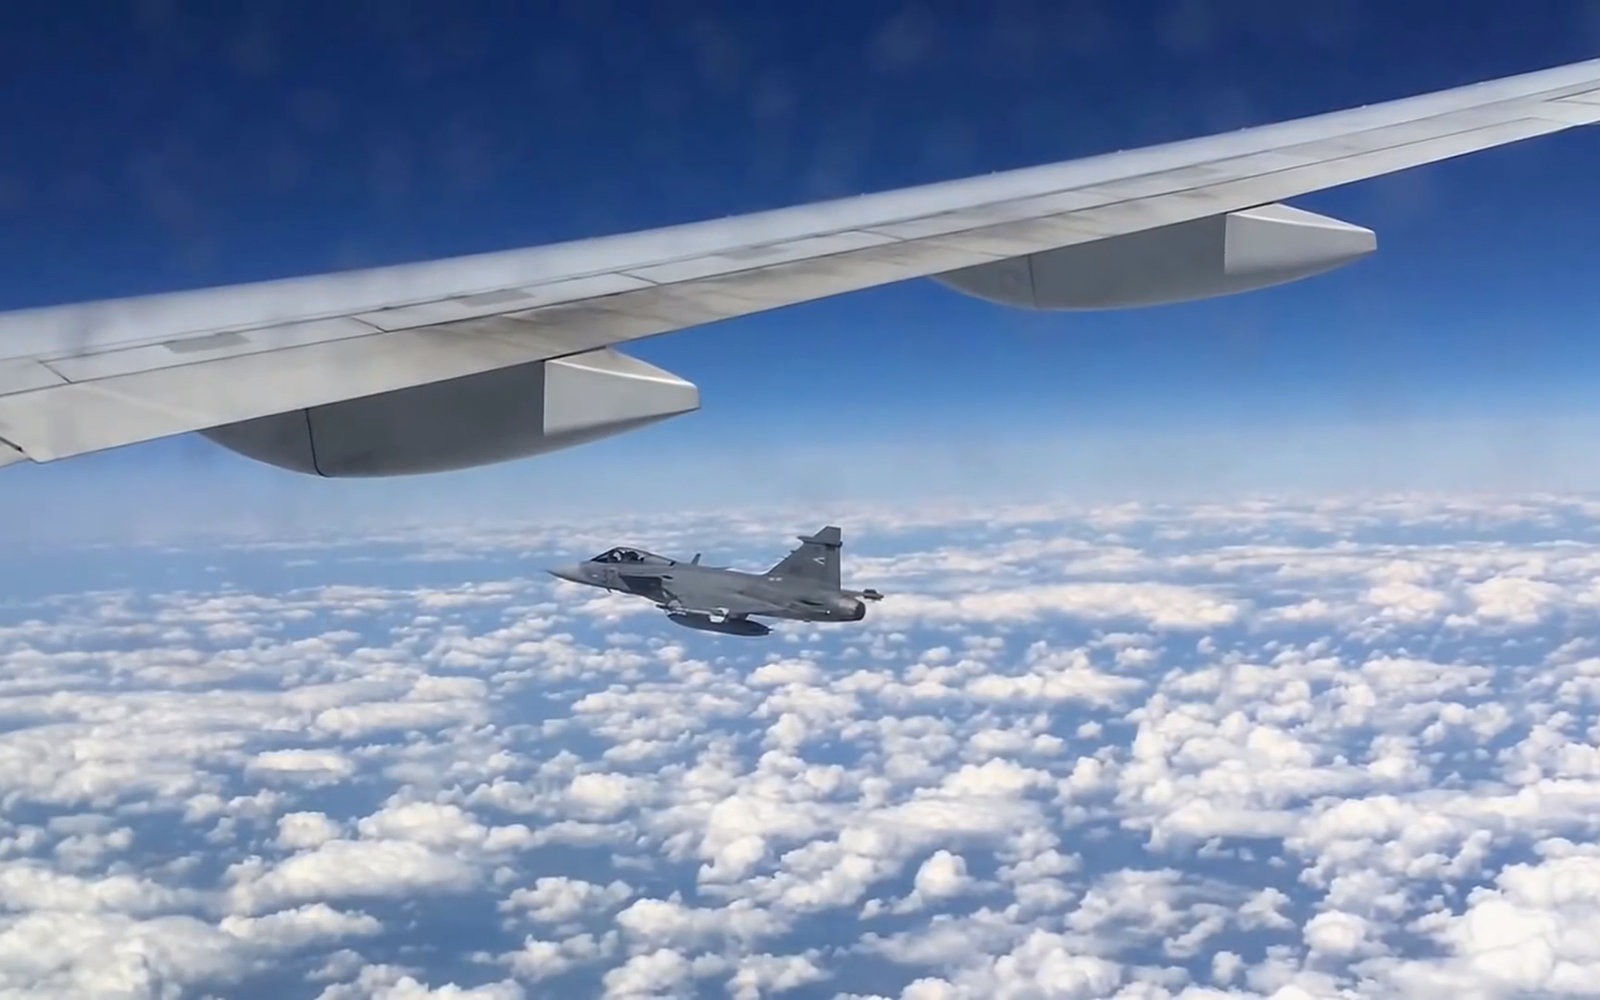 Fighter Jet seen from commercial airplane